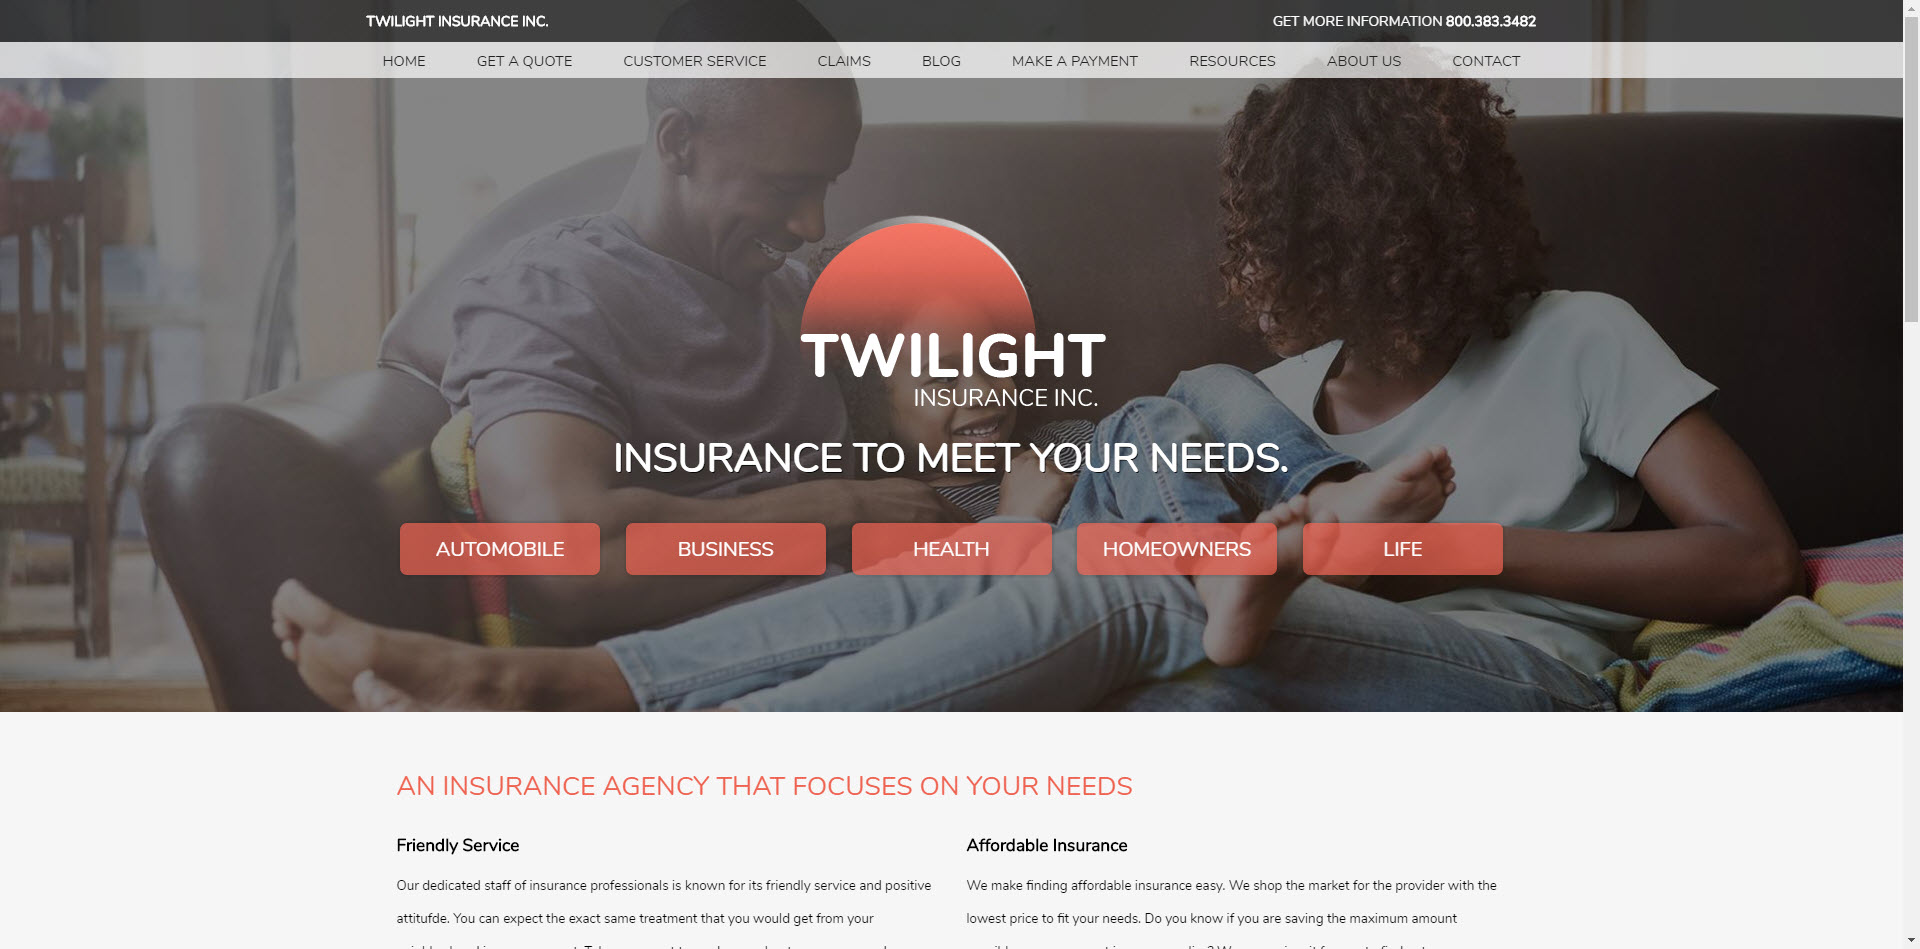 Twilight ITC insurance website template